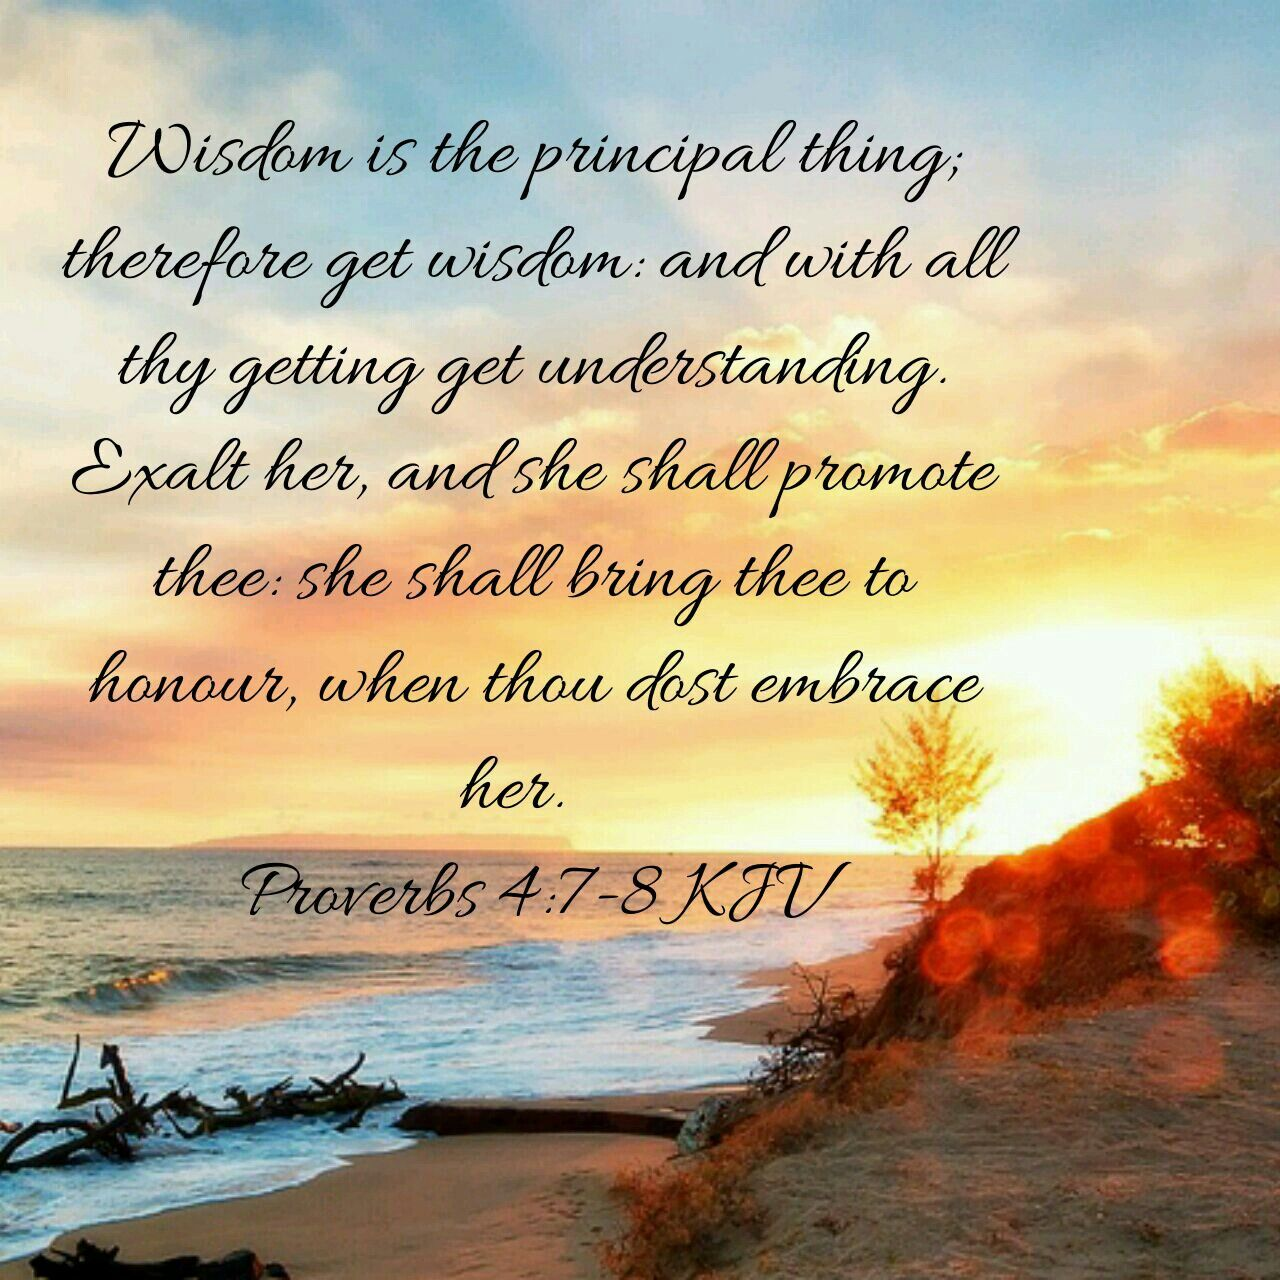 Book Of Proverbs Quotes: Image Result For 2 Corinthians 4:7-8 Kjv